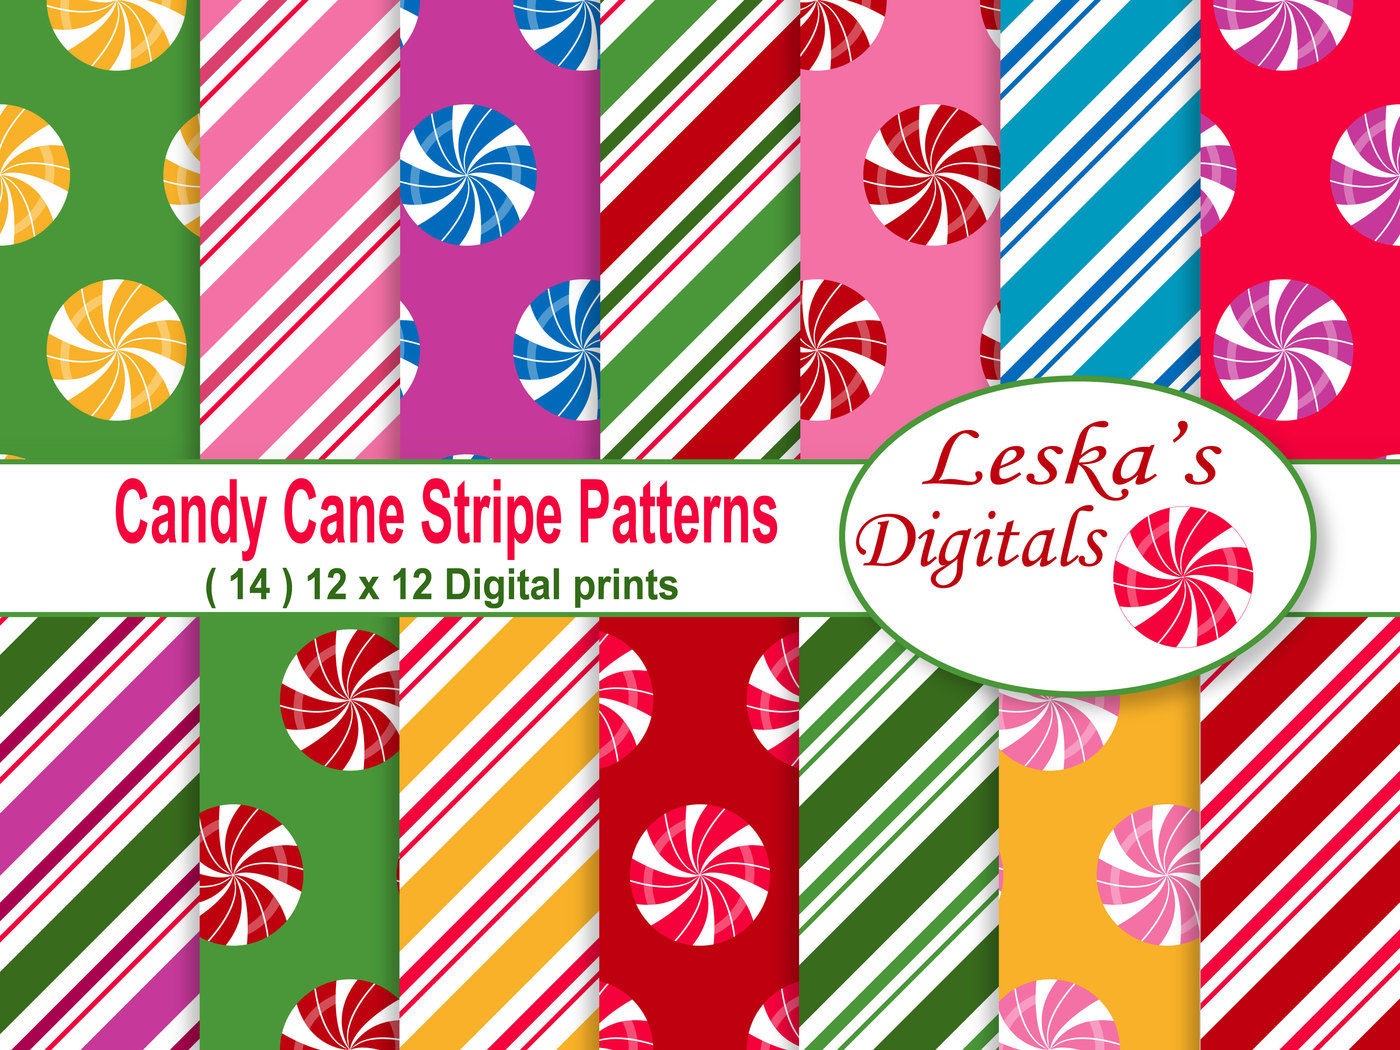 Christmas Digital Paper Candy Cane By Leska S Digitals